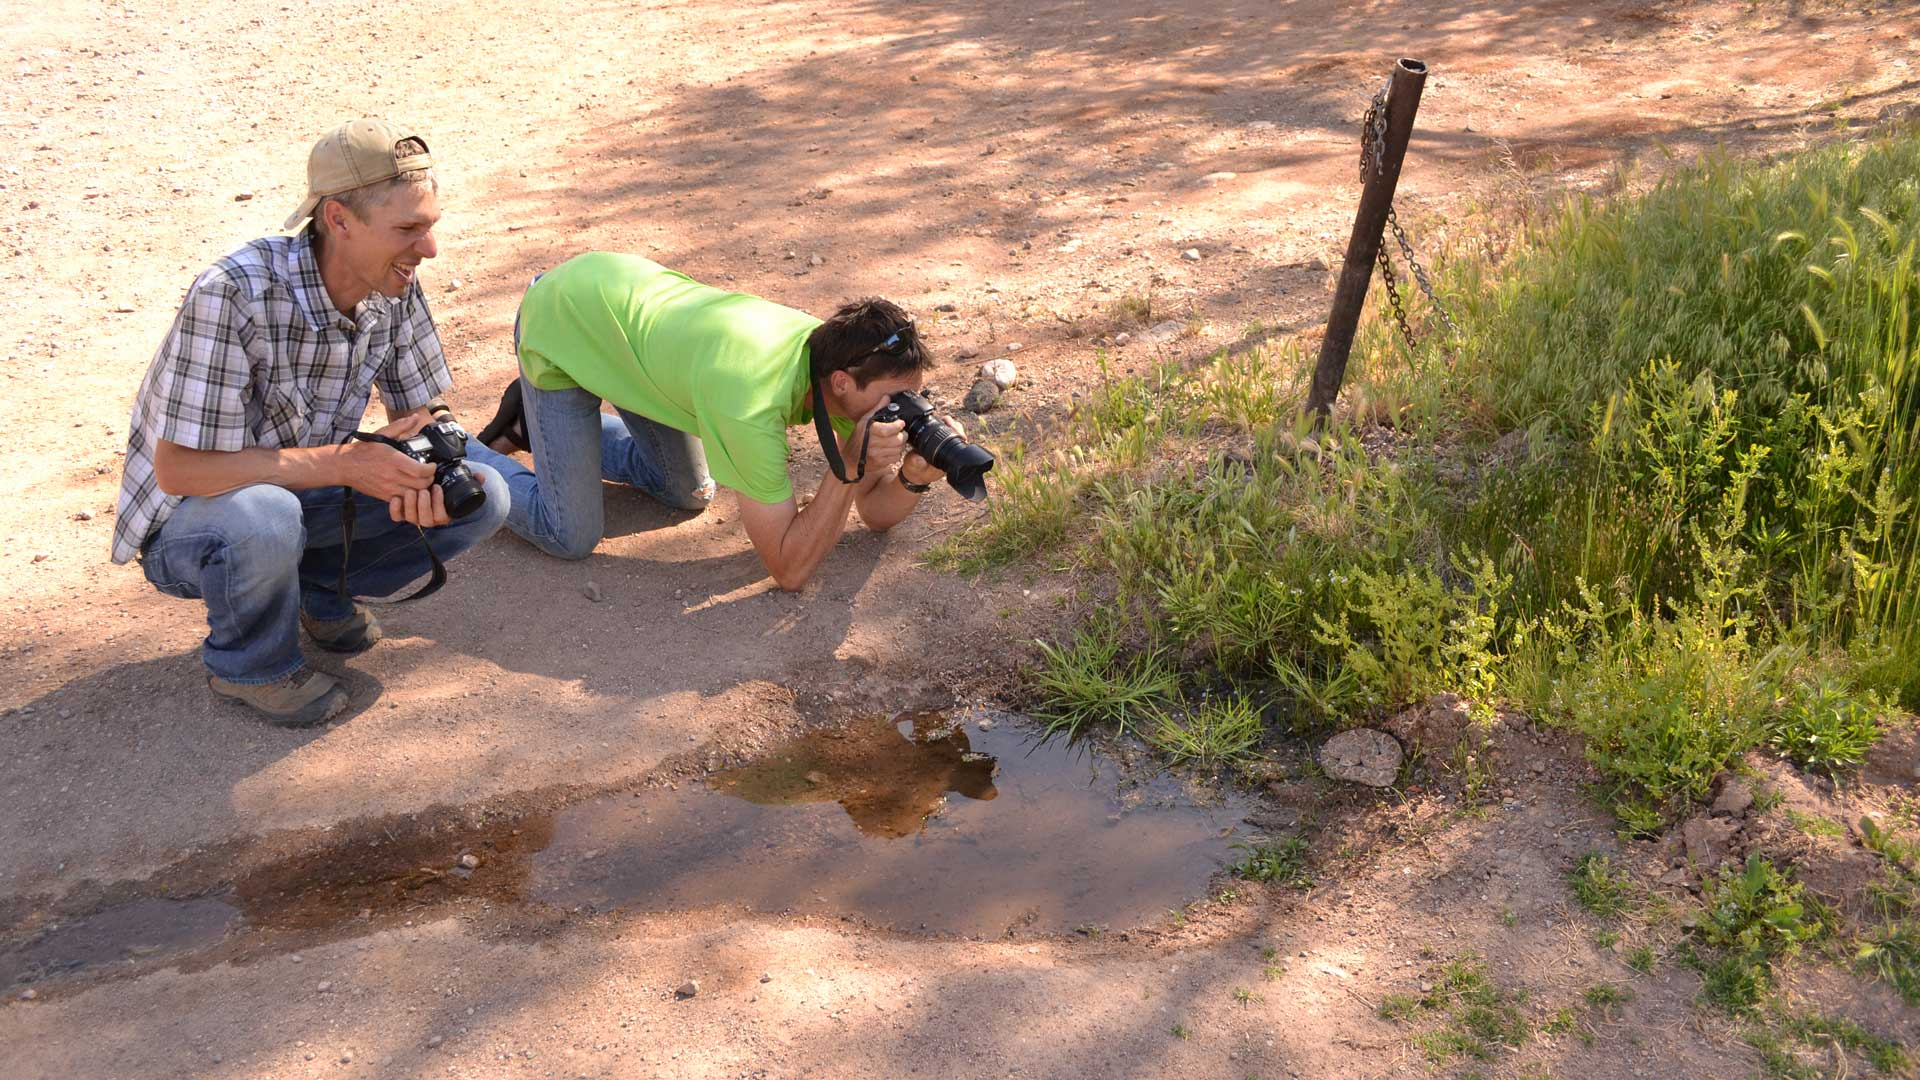 Photographing a rattlesnake